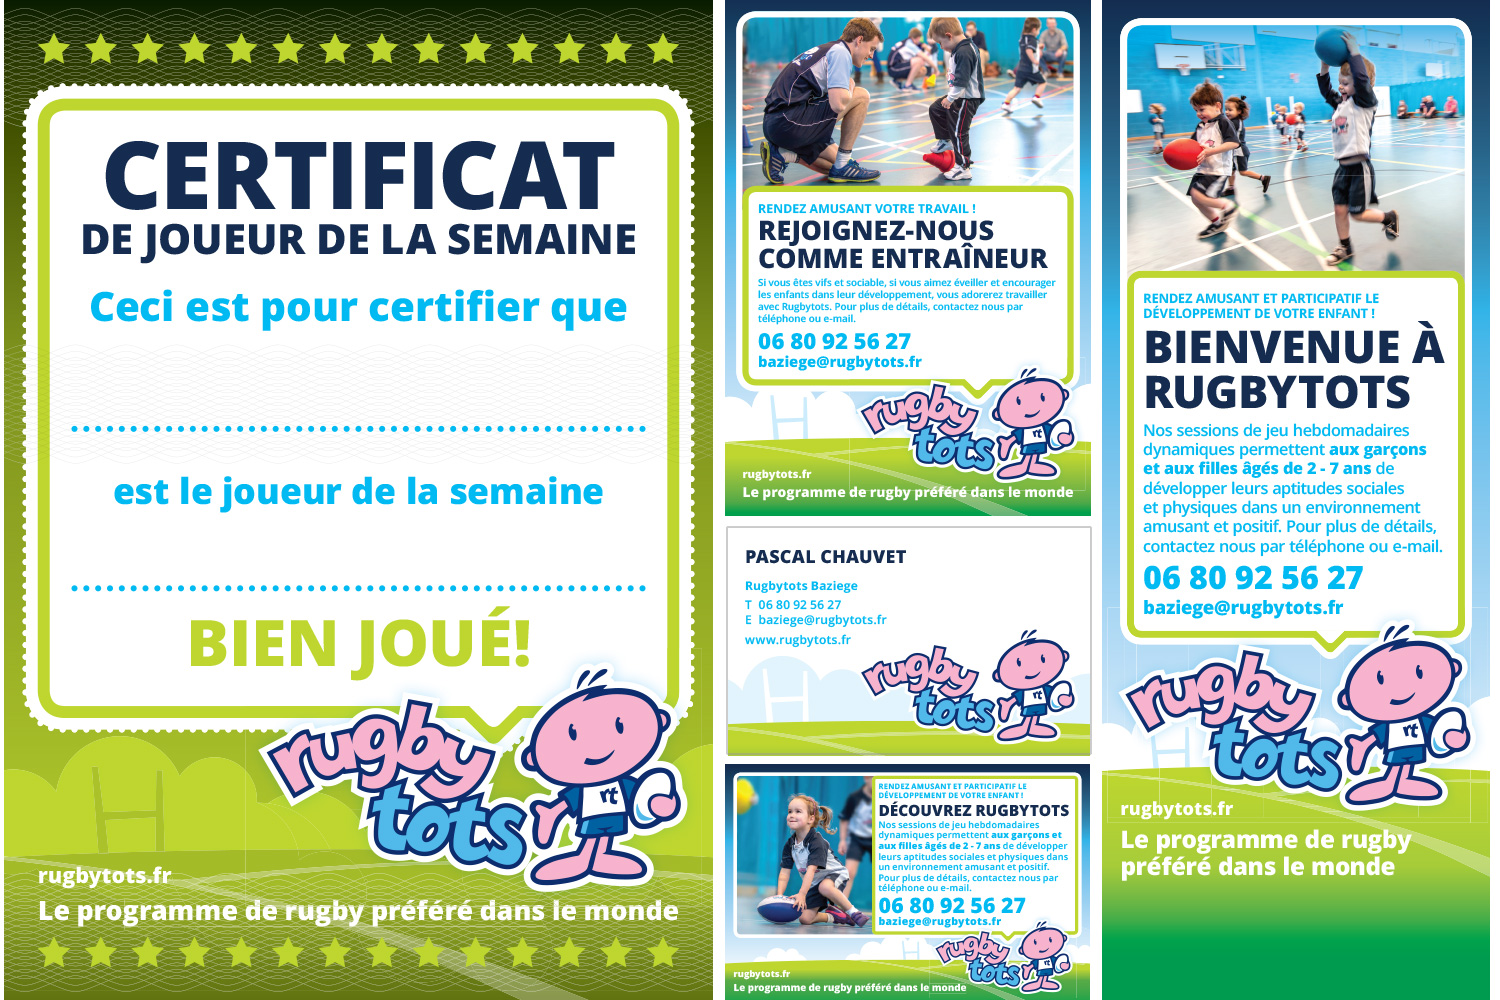 Rugbytots marketing materials in French